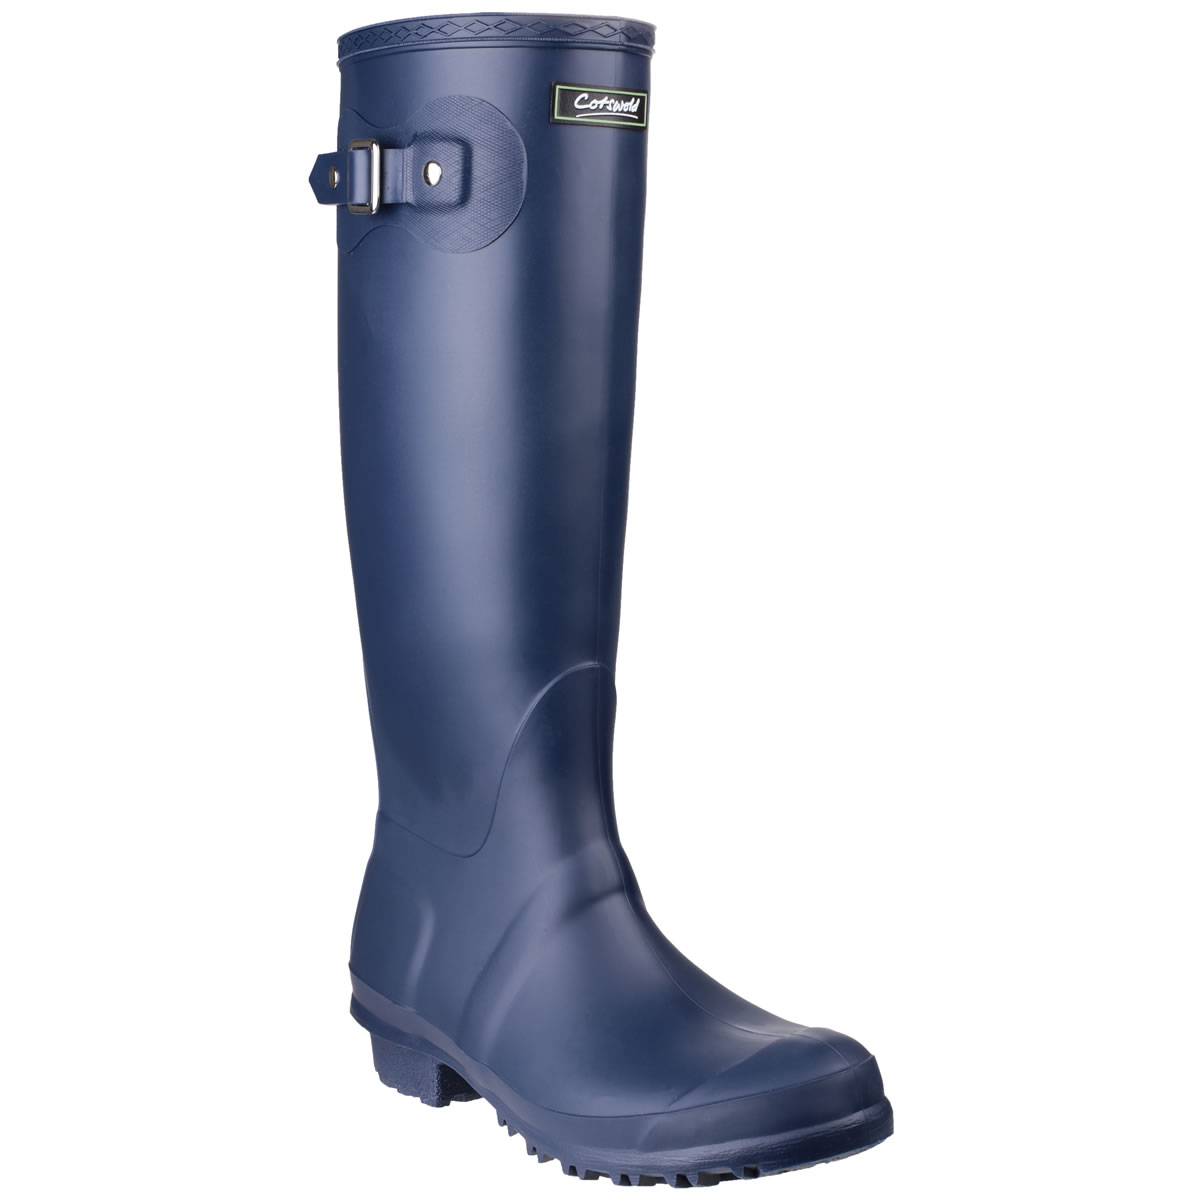 Extra image of Womens Cotswold Sandringham Wellington Boots - Navy - UK Size 4